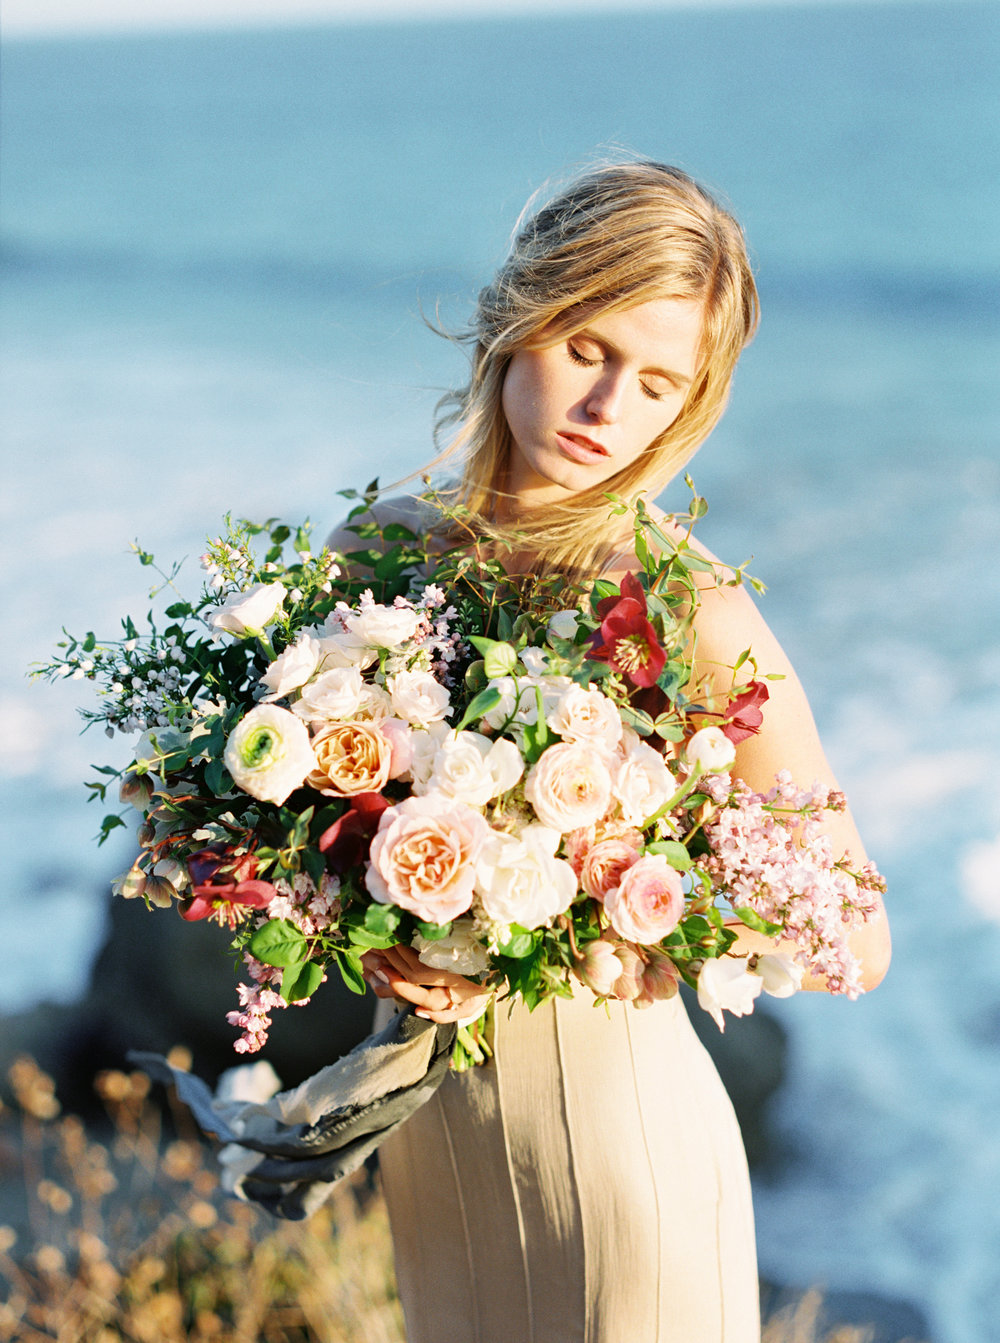 malibu_wedding_bride-65.jpg